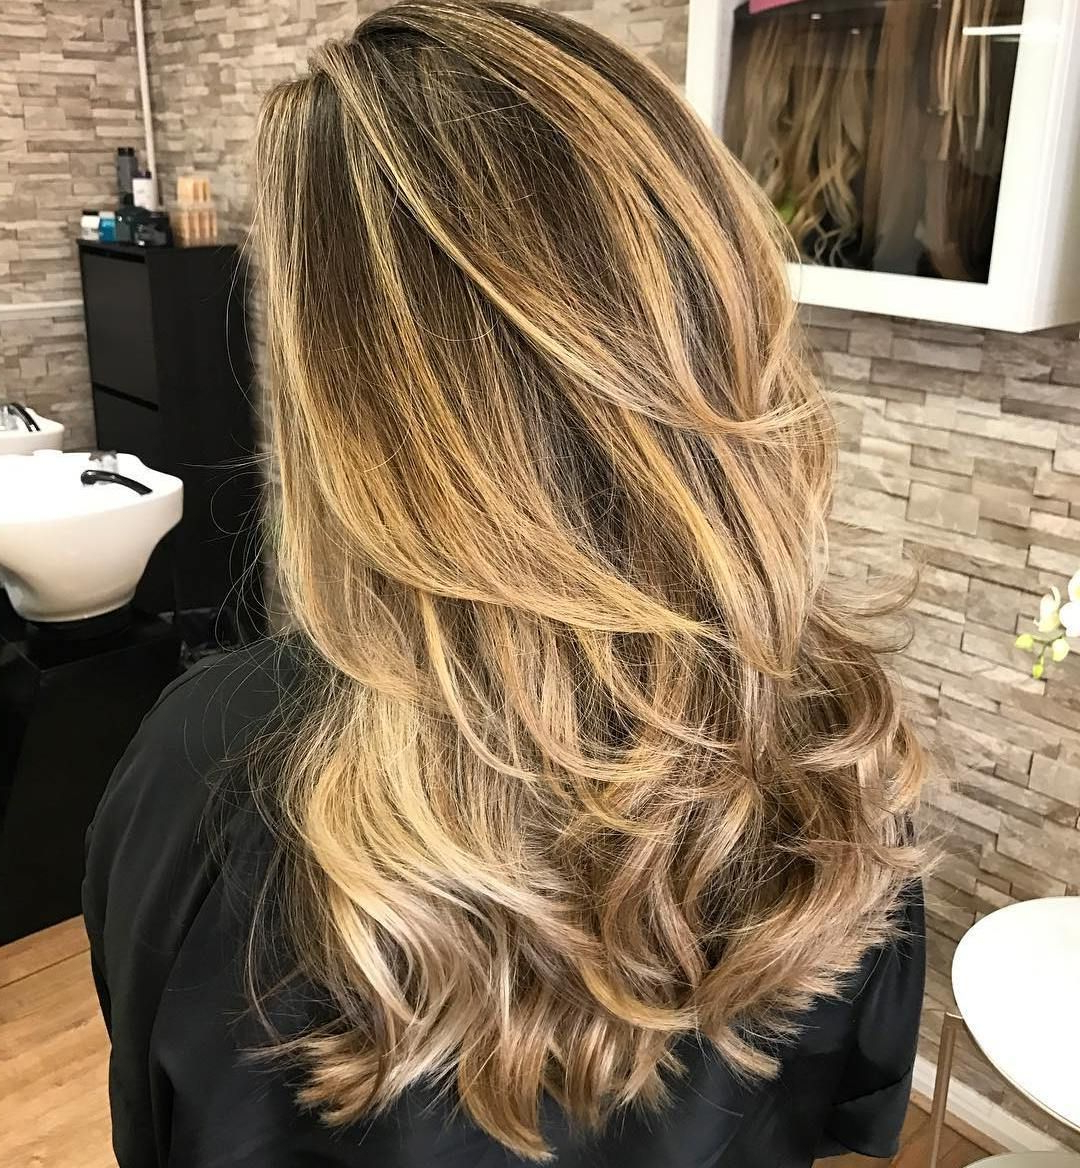 Pin On Beauty Regarding Best And Newest Lovely Golden Blonde Haircuts With Swoopy Layers (View 2 of 20)